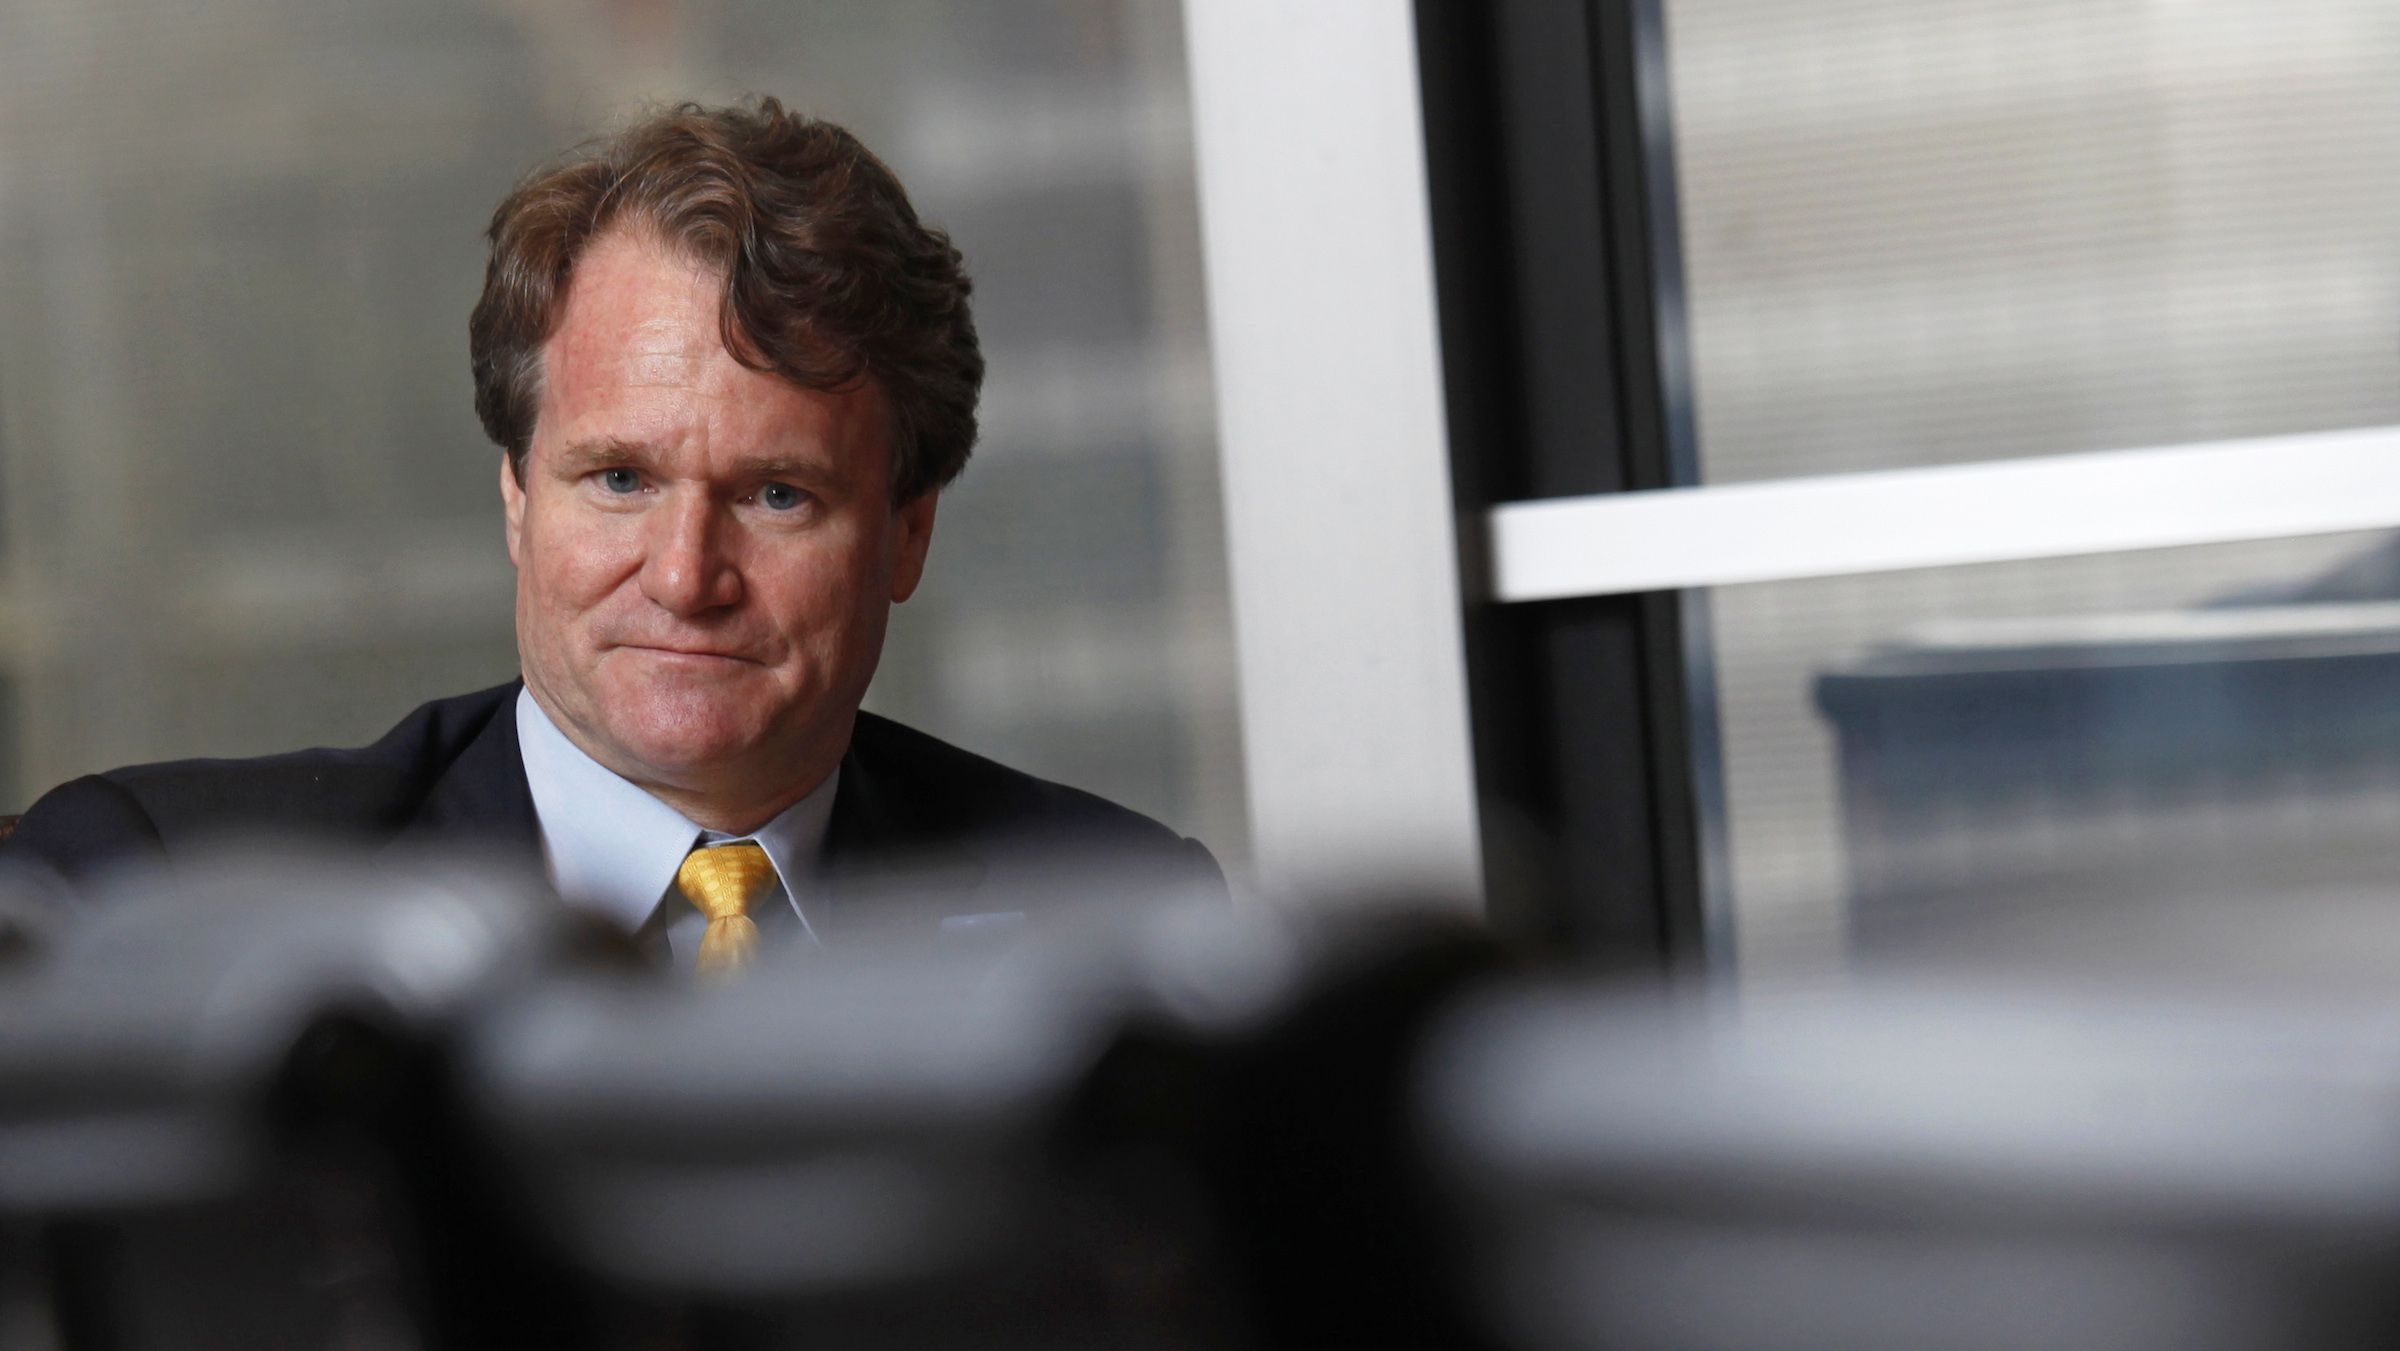 Bank of America Chief Executive Brian Moynihan looks on during an interview in Hong Kong